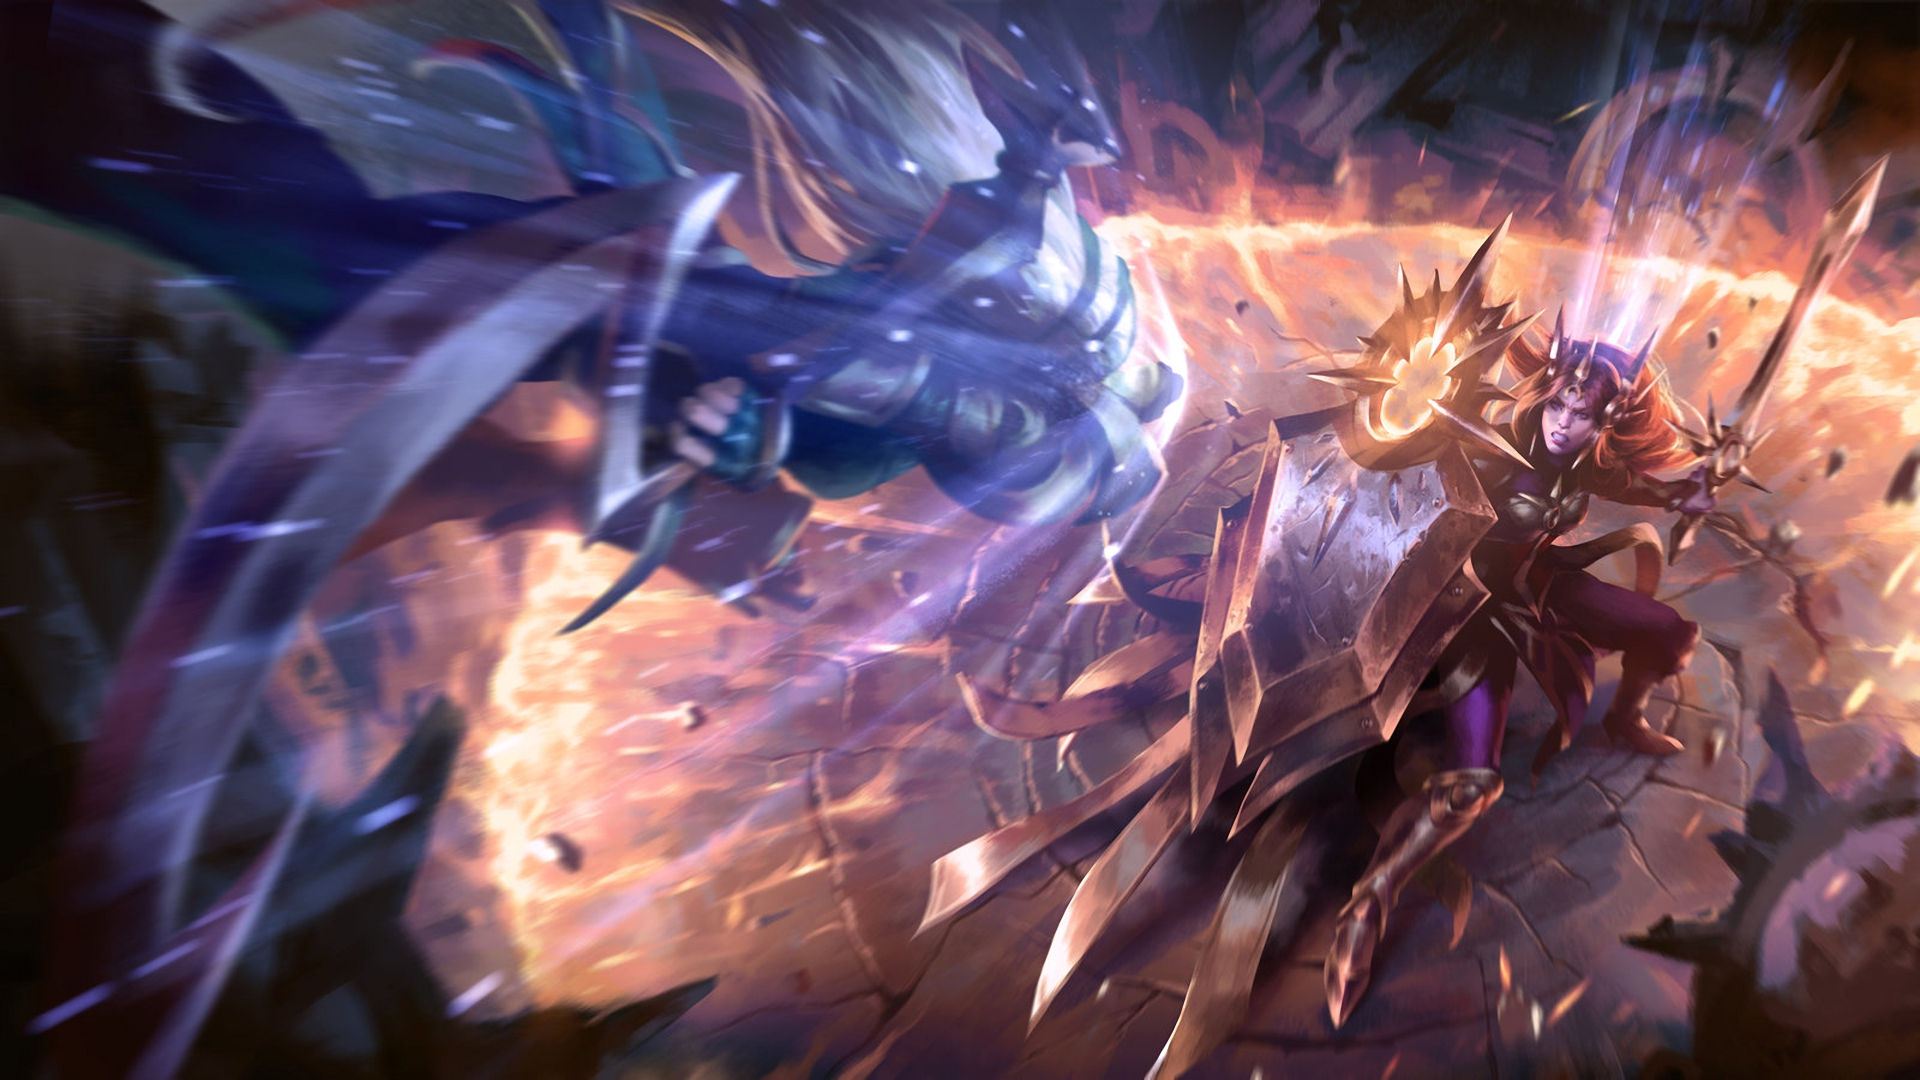 70 Diana (League Of Legends) HD Wallpapers | Background ...